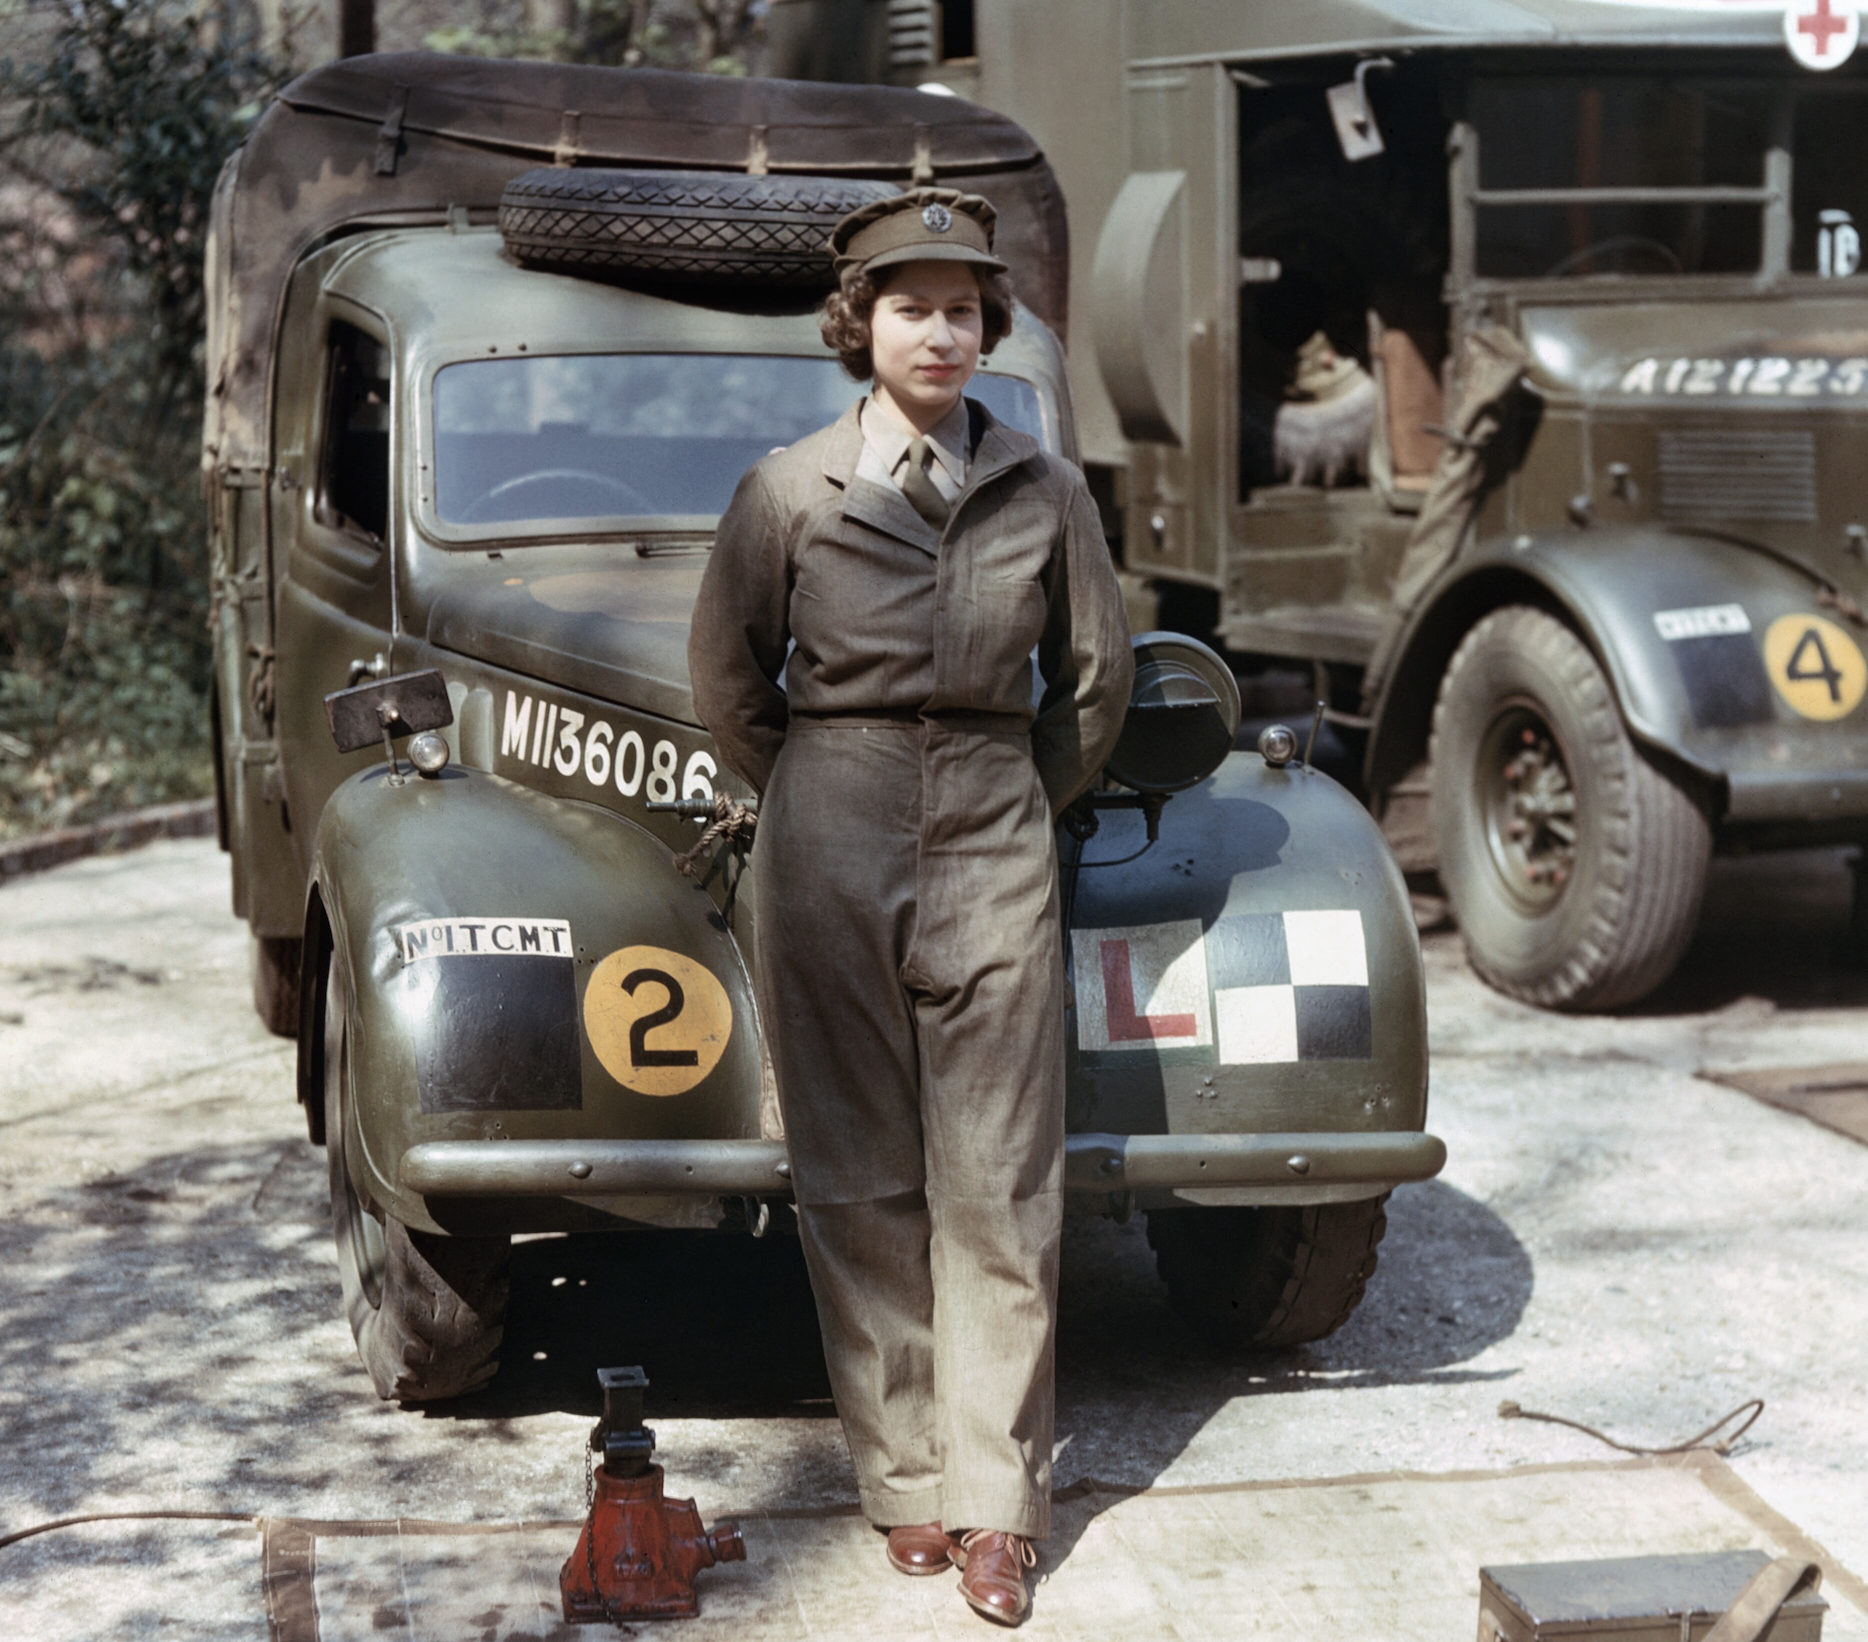 The future Queen Elizabeth II, wearing a military uniform, poses by a WWII medical vehicle.